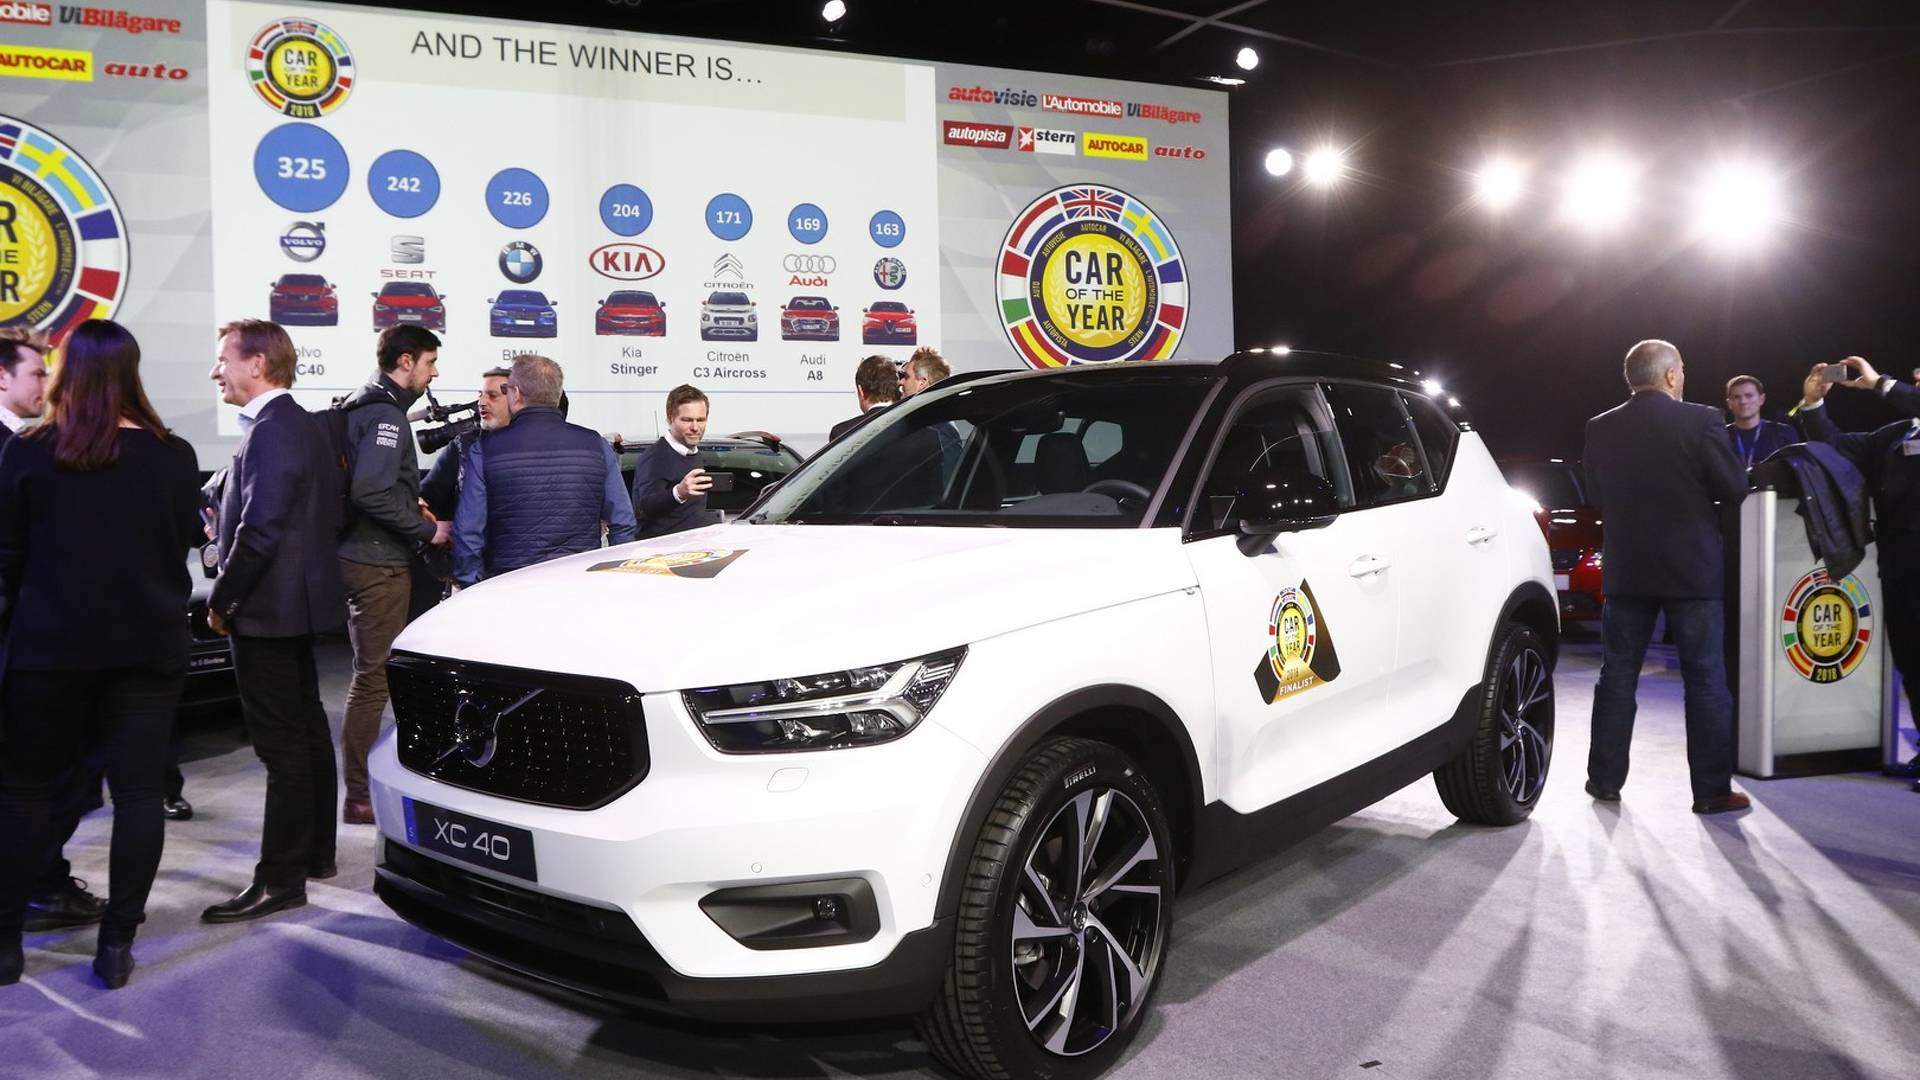 Volvo XC40 z tytulem Car of the Year